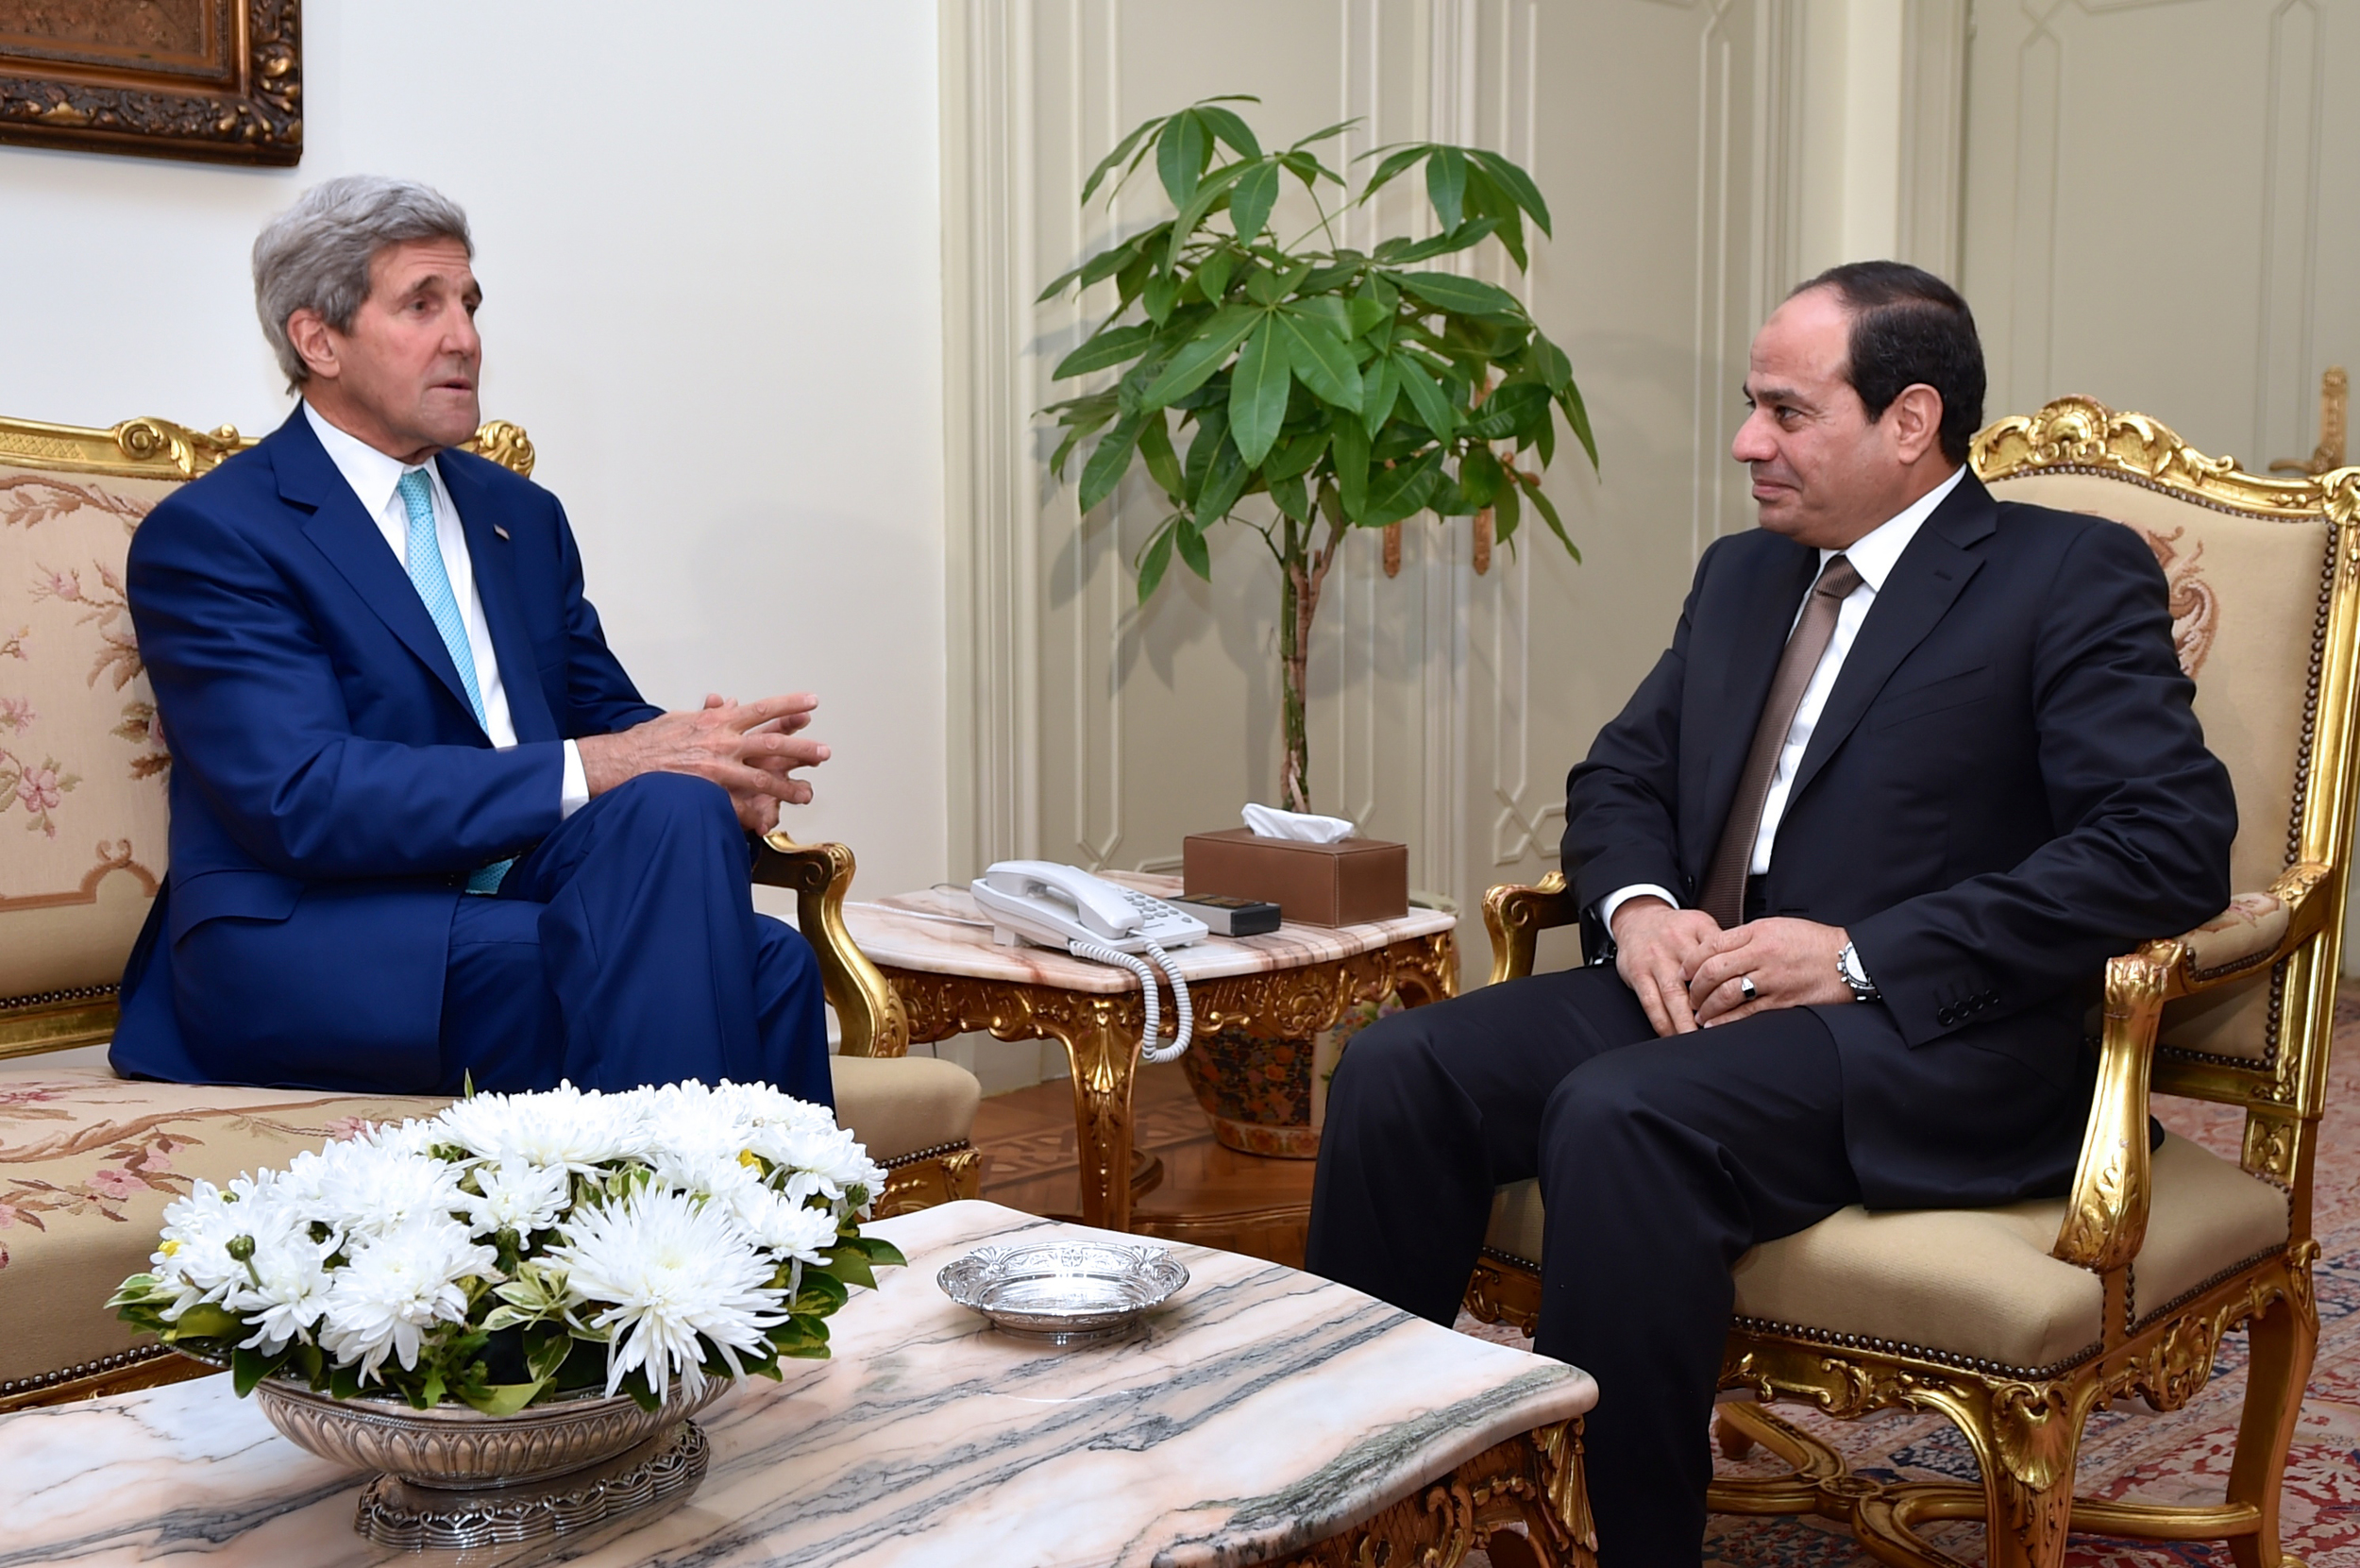 Click photo to download. Caption: U.S. Secretary of State John Kerry meets with Egyptian President Abdel Fattah El-Sisi at the Presidential Palace in Cairo on July 22, 2014, to discuss a possible cease-fire deal for the conflict between Israel and Hamas. Relations between the U.S. and Egypt, longtime allies, have been strained since America supported the ouster of Egyptian president Hosni Mubarak in 2011. Credit: U.S. Department of State.